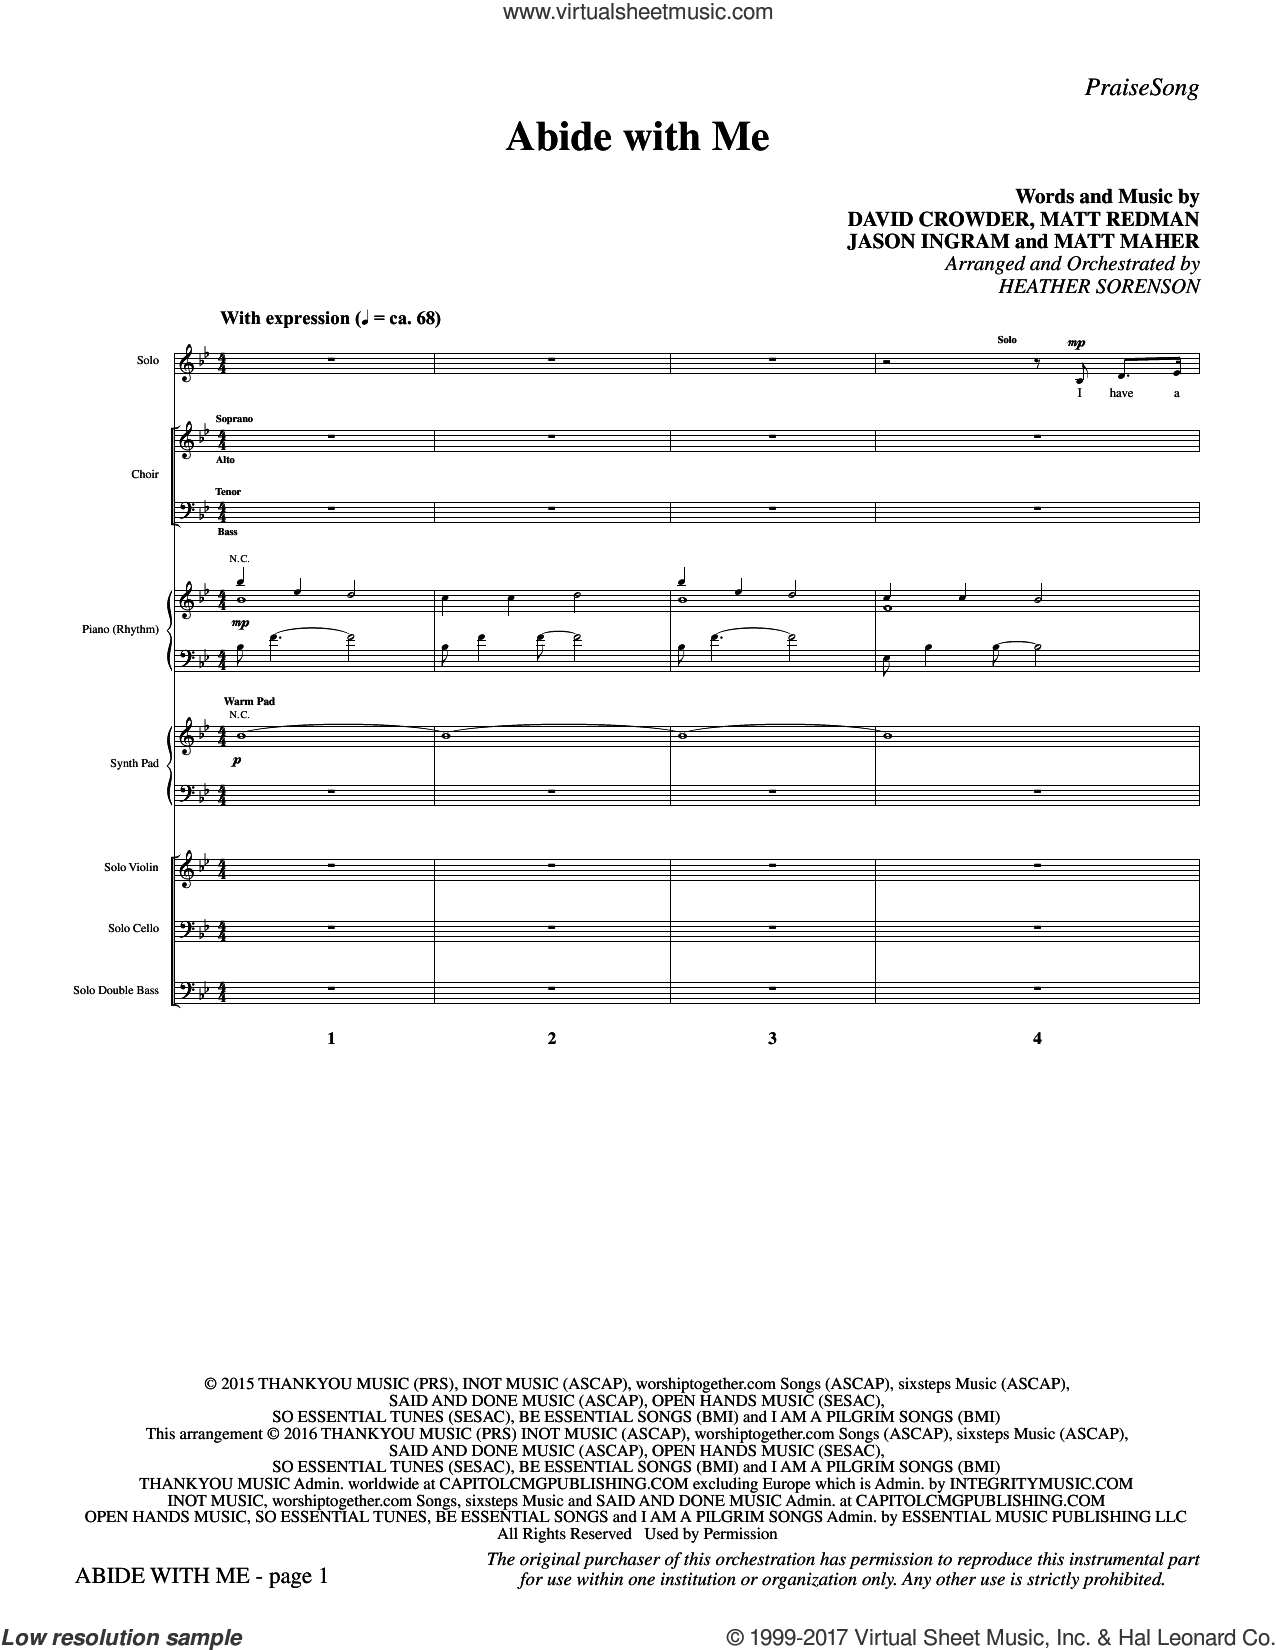 Abide with Me (COMPLETE) sheet music for orchestra/band by Heather Sorenson, David Crowder, Jason Ingram, Matt Maher and Matt Redman, intermediate skill level